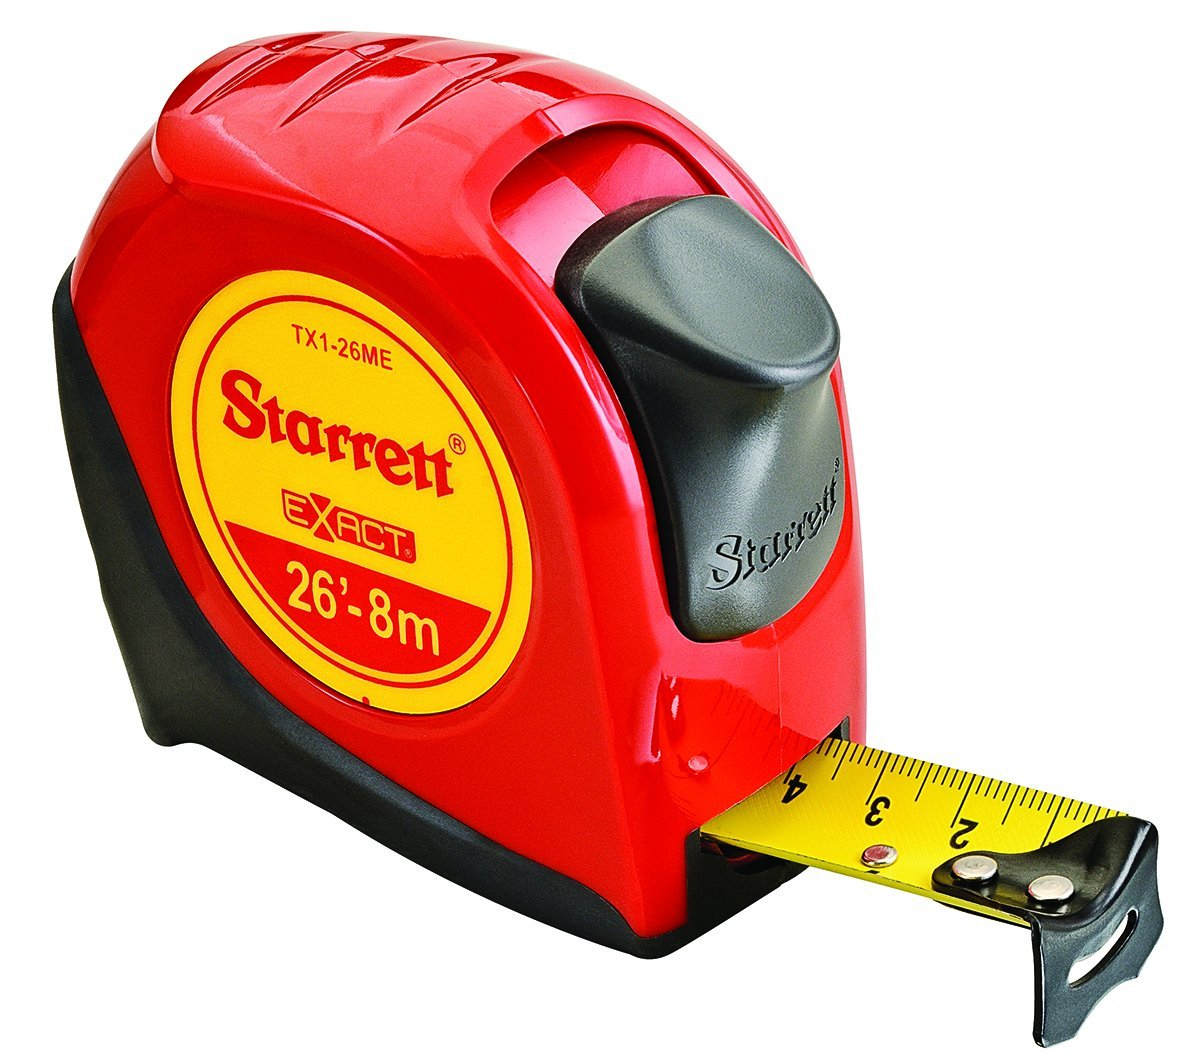 Starrett KTX1-26ME-N-SP01 Exact English/Metric Tape Measure, 1'' Wide x 26' (8 m) Long, Graduated in 1/16'' with Over molding for Improved Grip